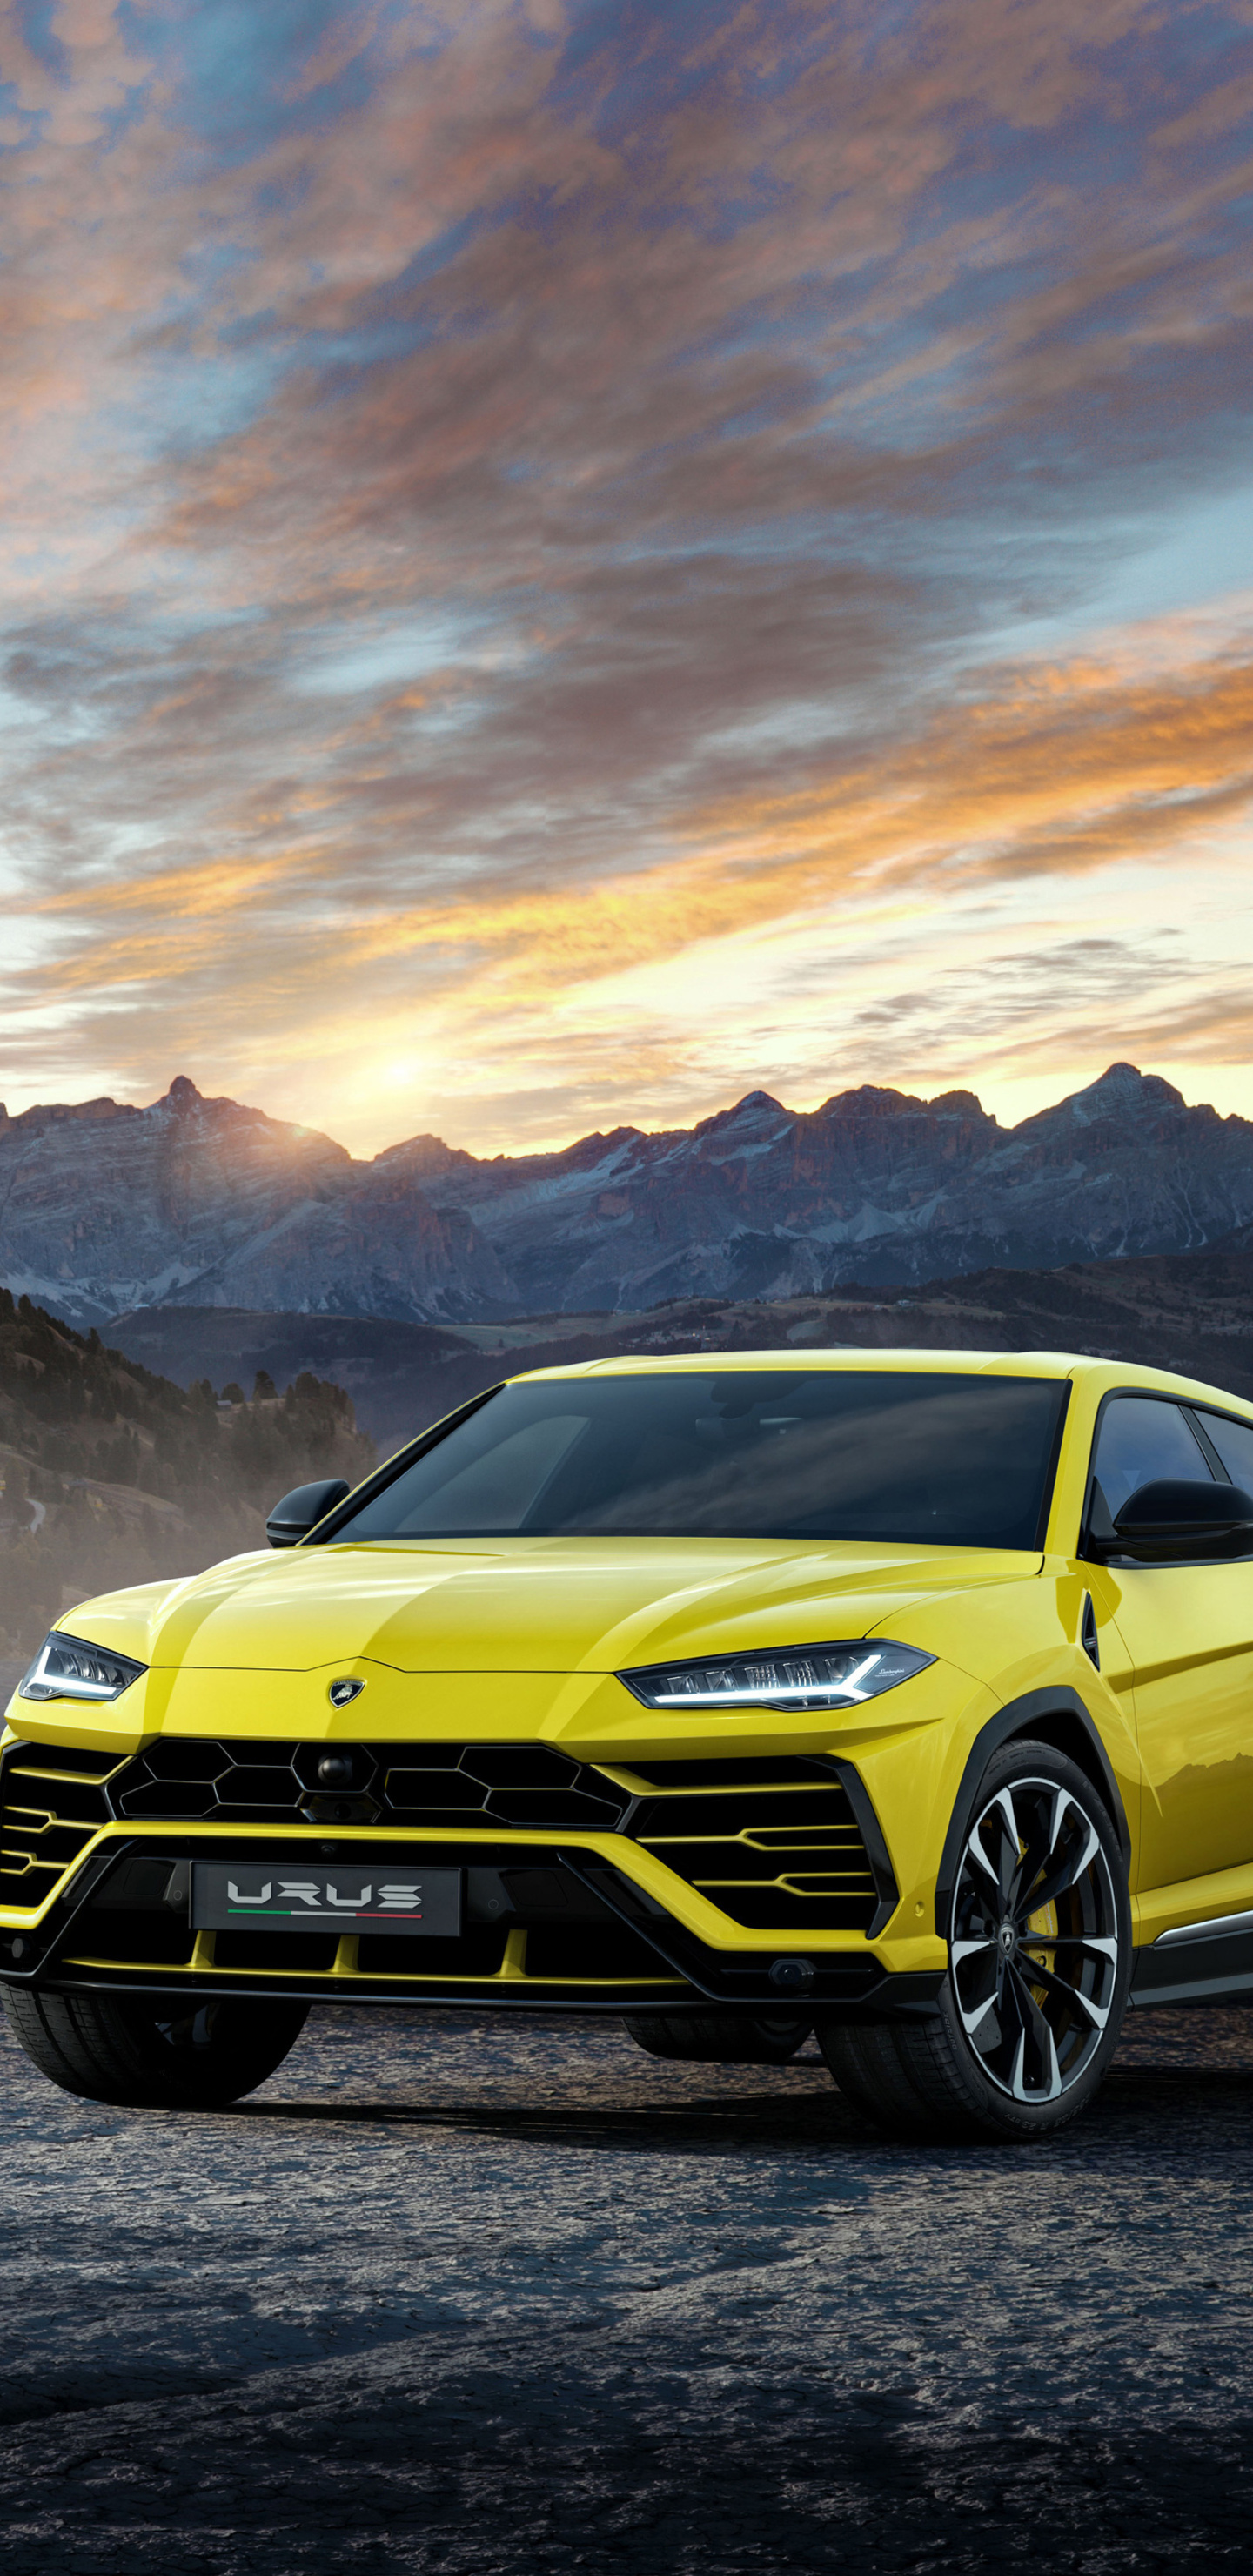 1440x2960 Lamborghini Urus Black And Yellow 4k Samsung